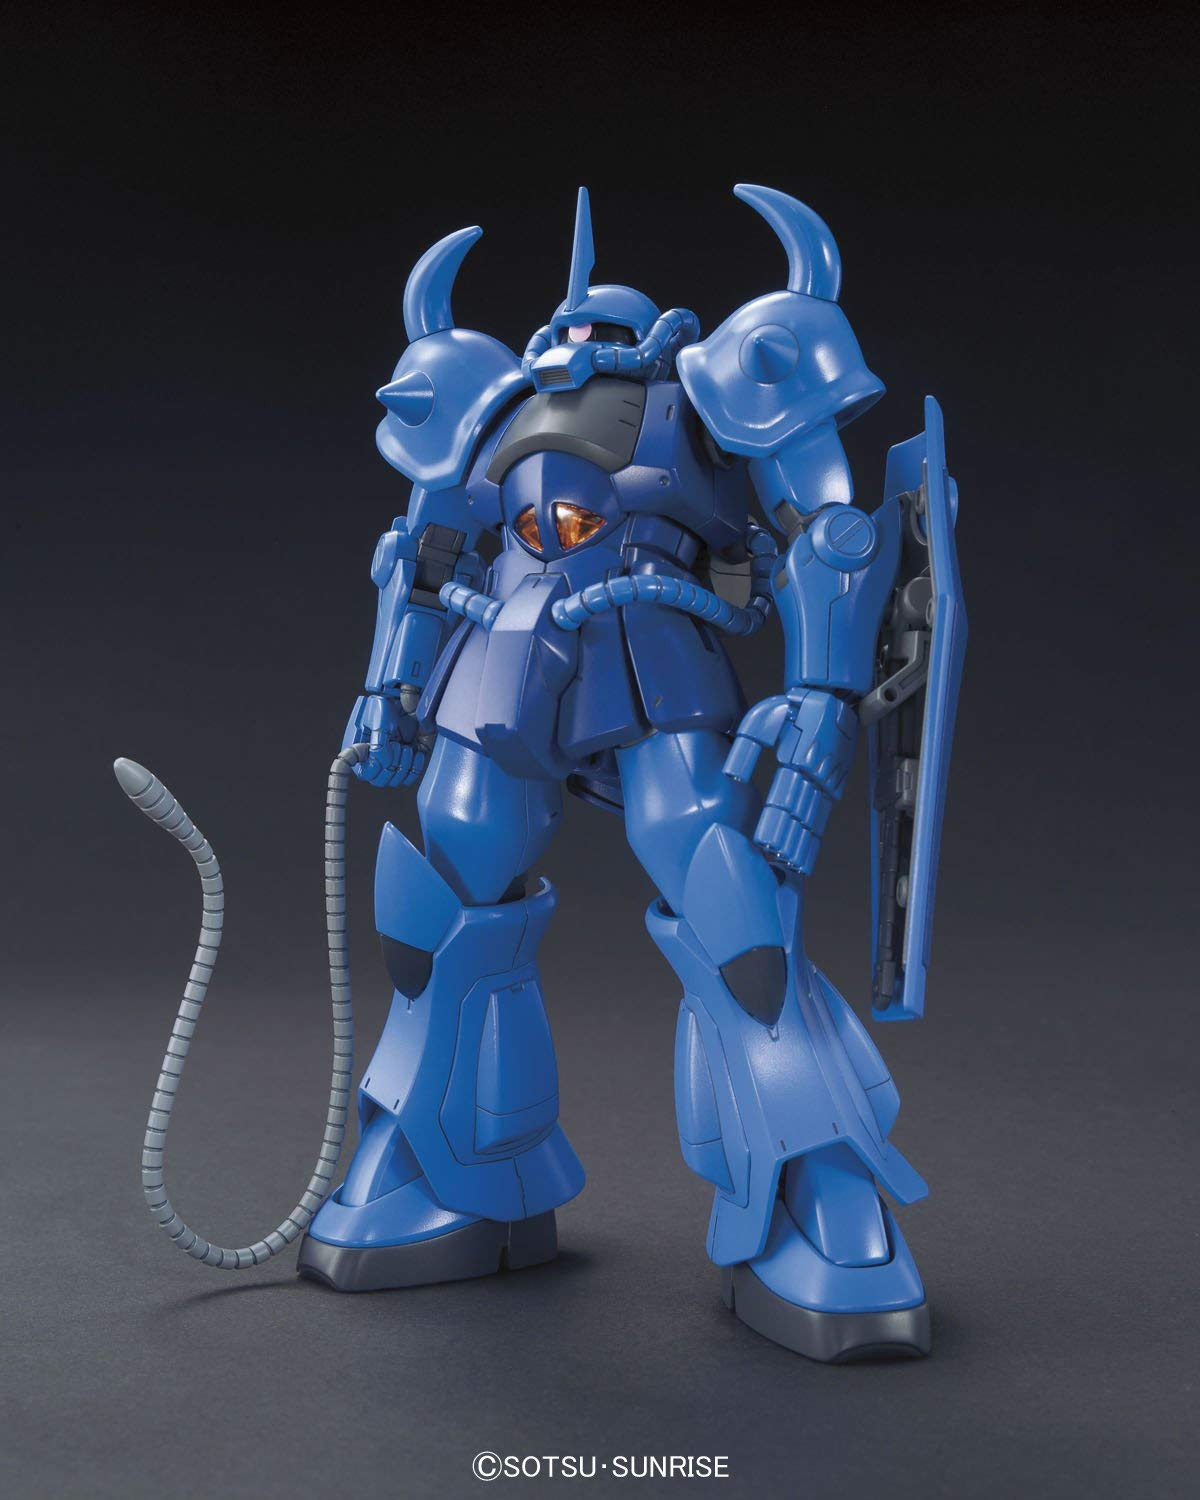 16498HGUC 1/144 REVIVE MS-07B グフ [Gouf] 5058007 0202301 4549660023012 4573102580078